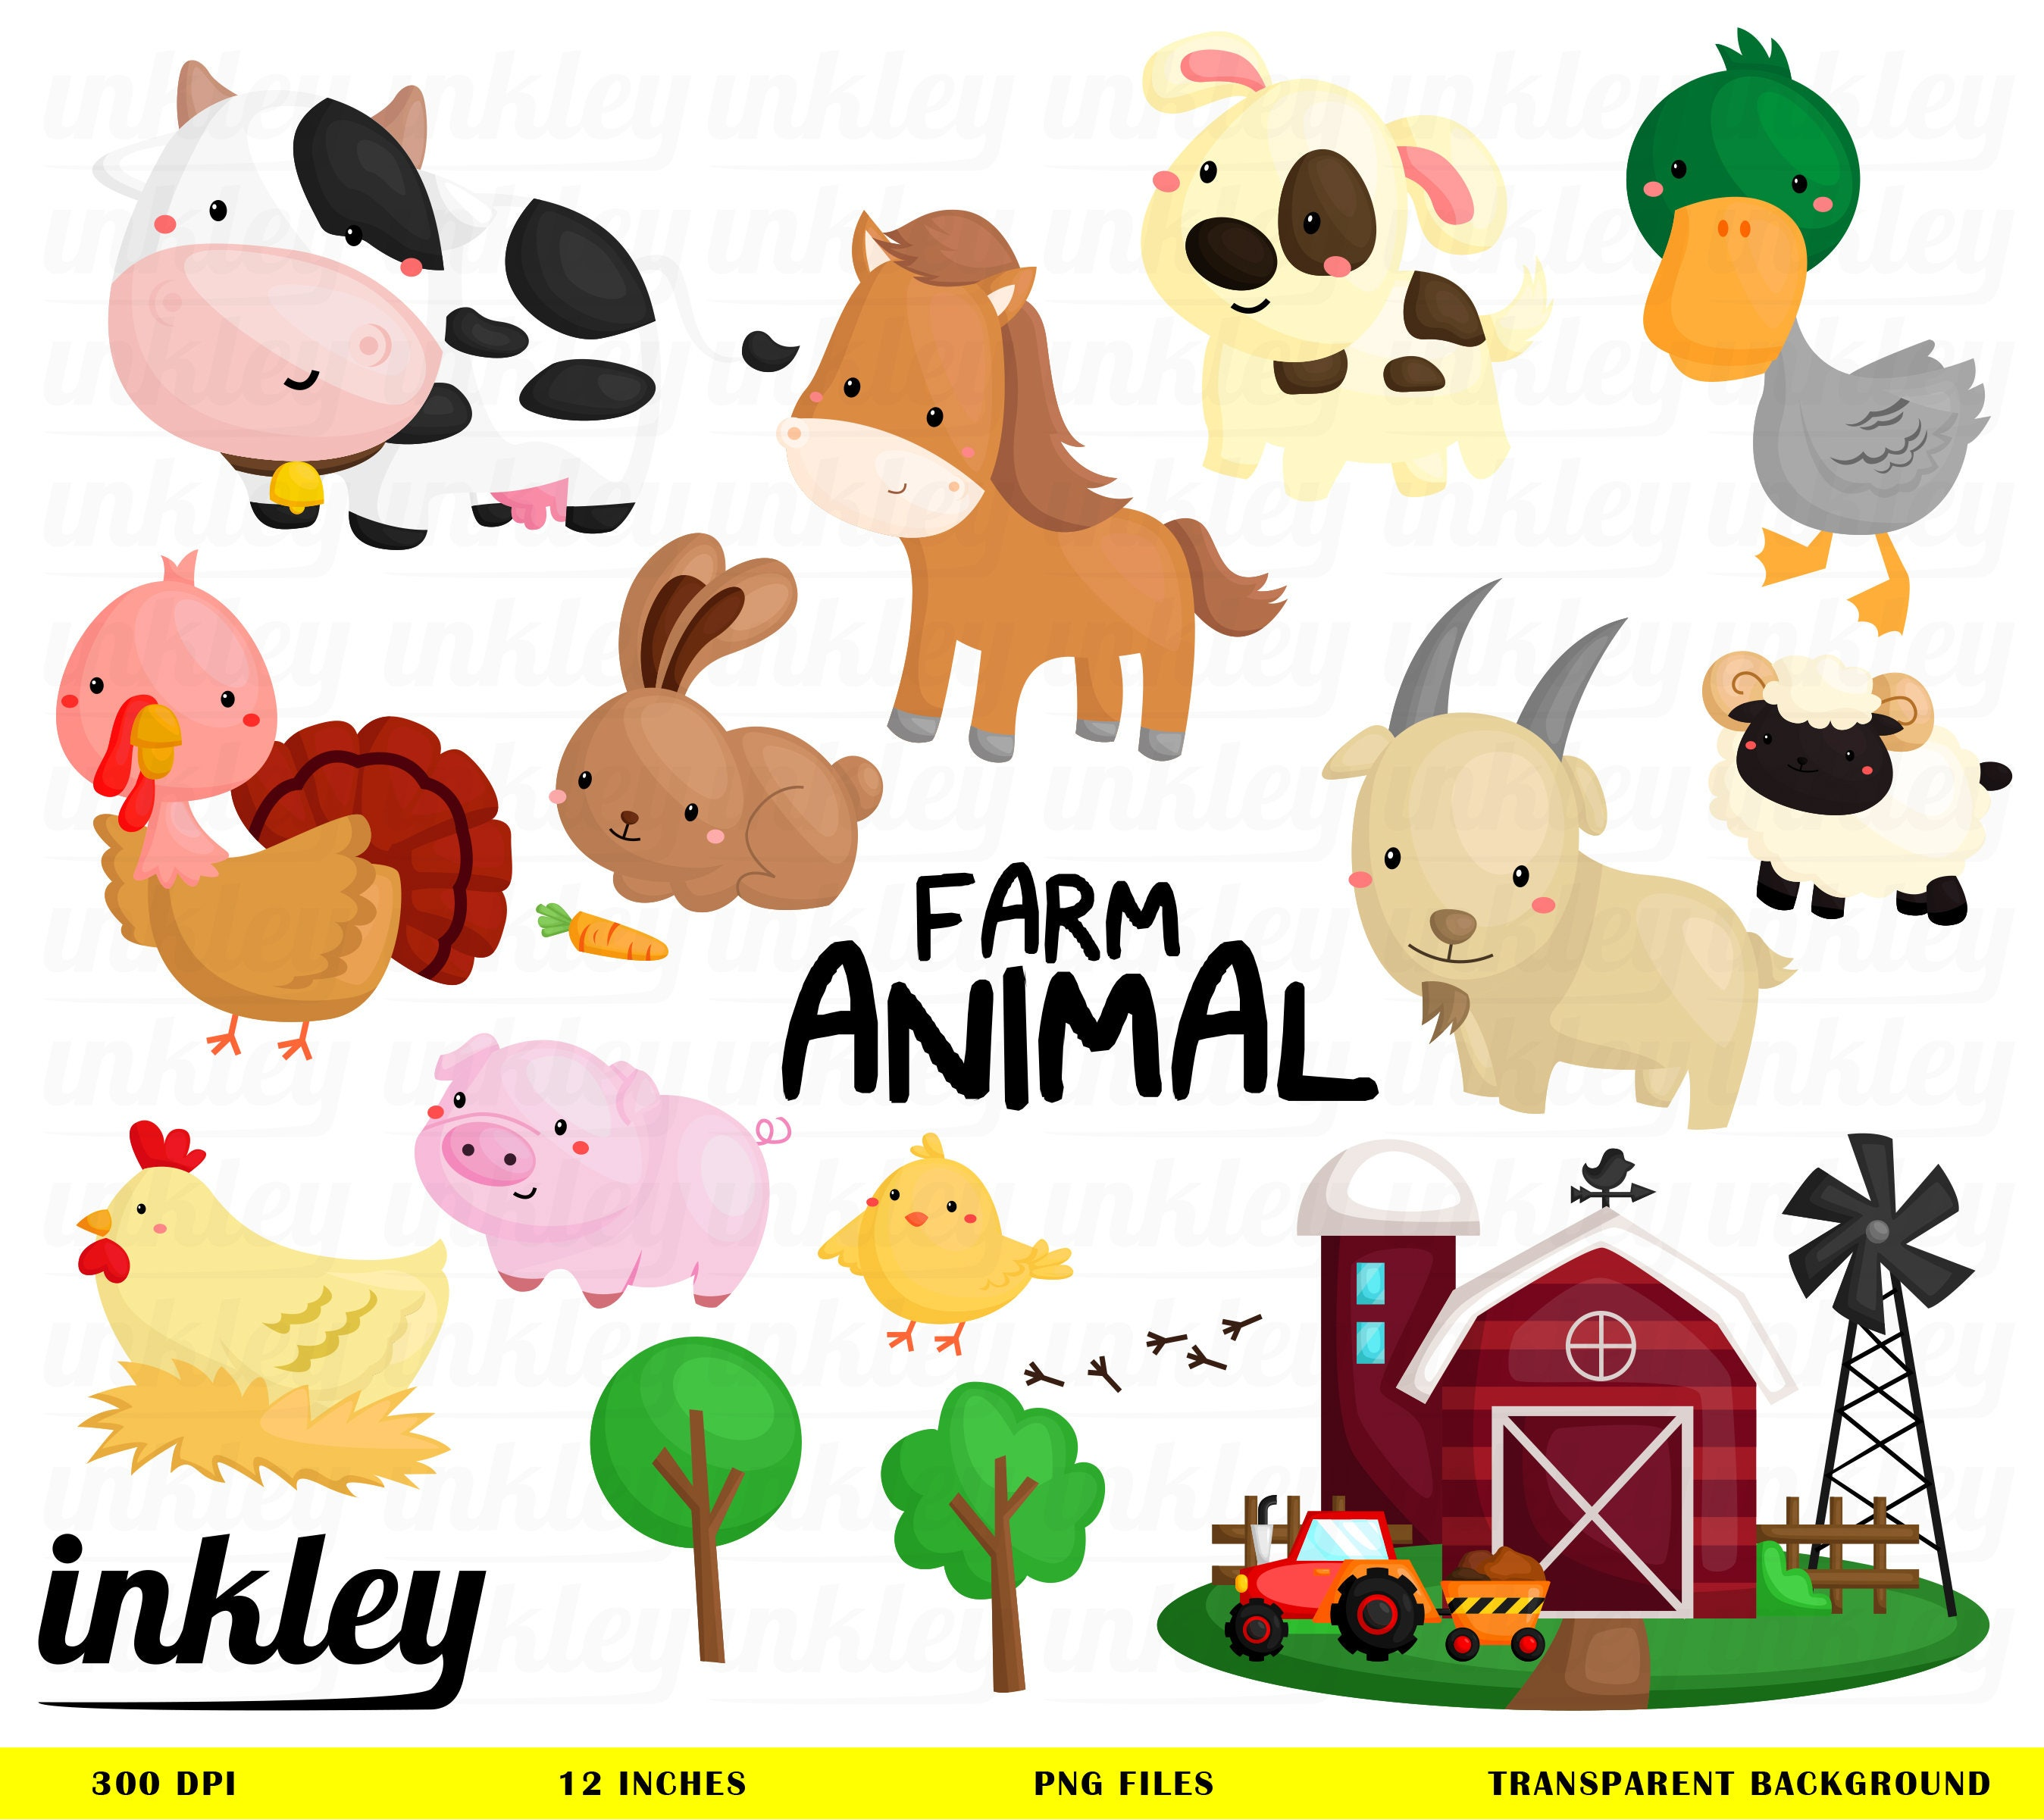 Farm Animal Clipart Farm Animal Clip Art Farm Animal Png